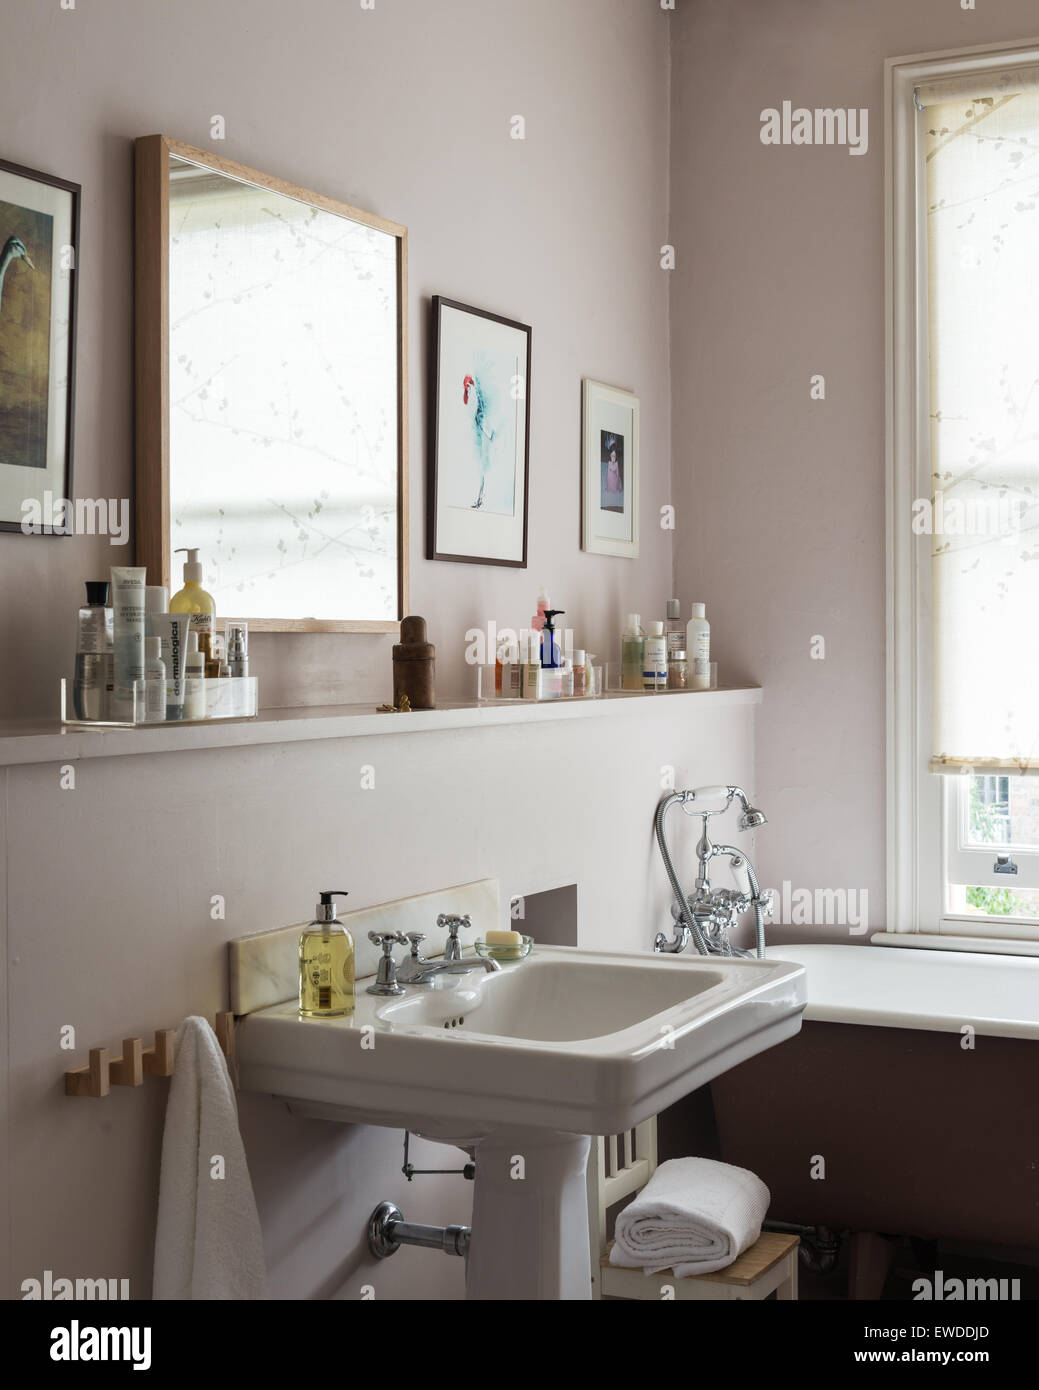 Free Standing Roll Top Bath In Bathroom And Victorian Style Basin